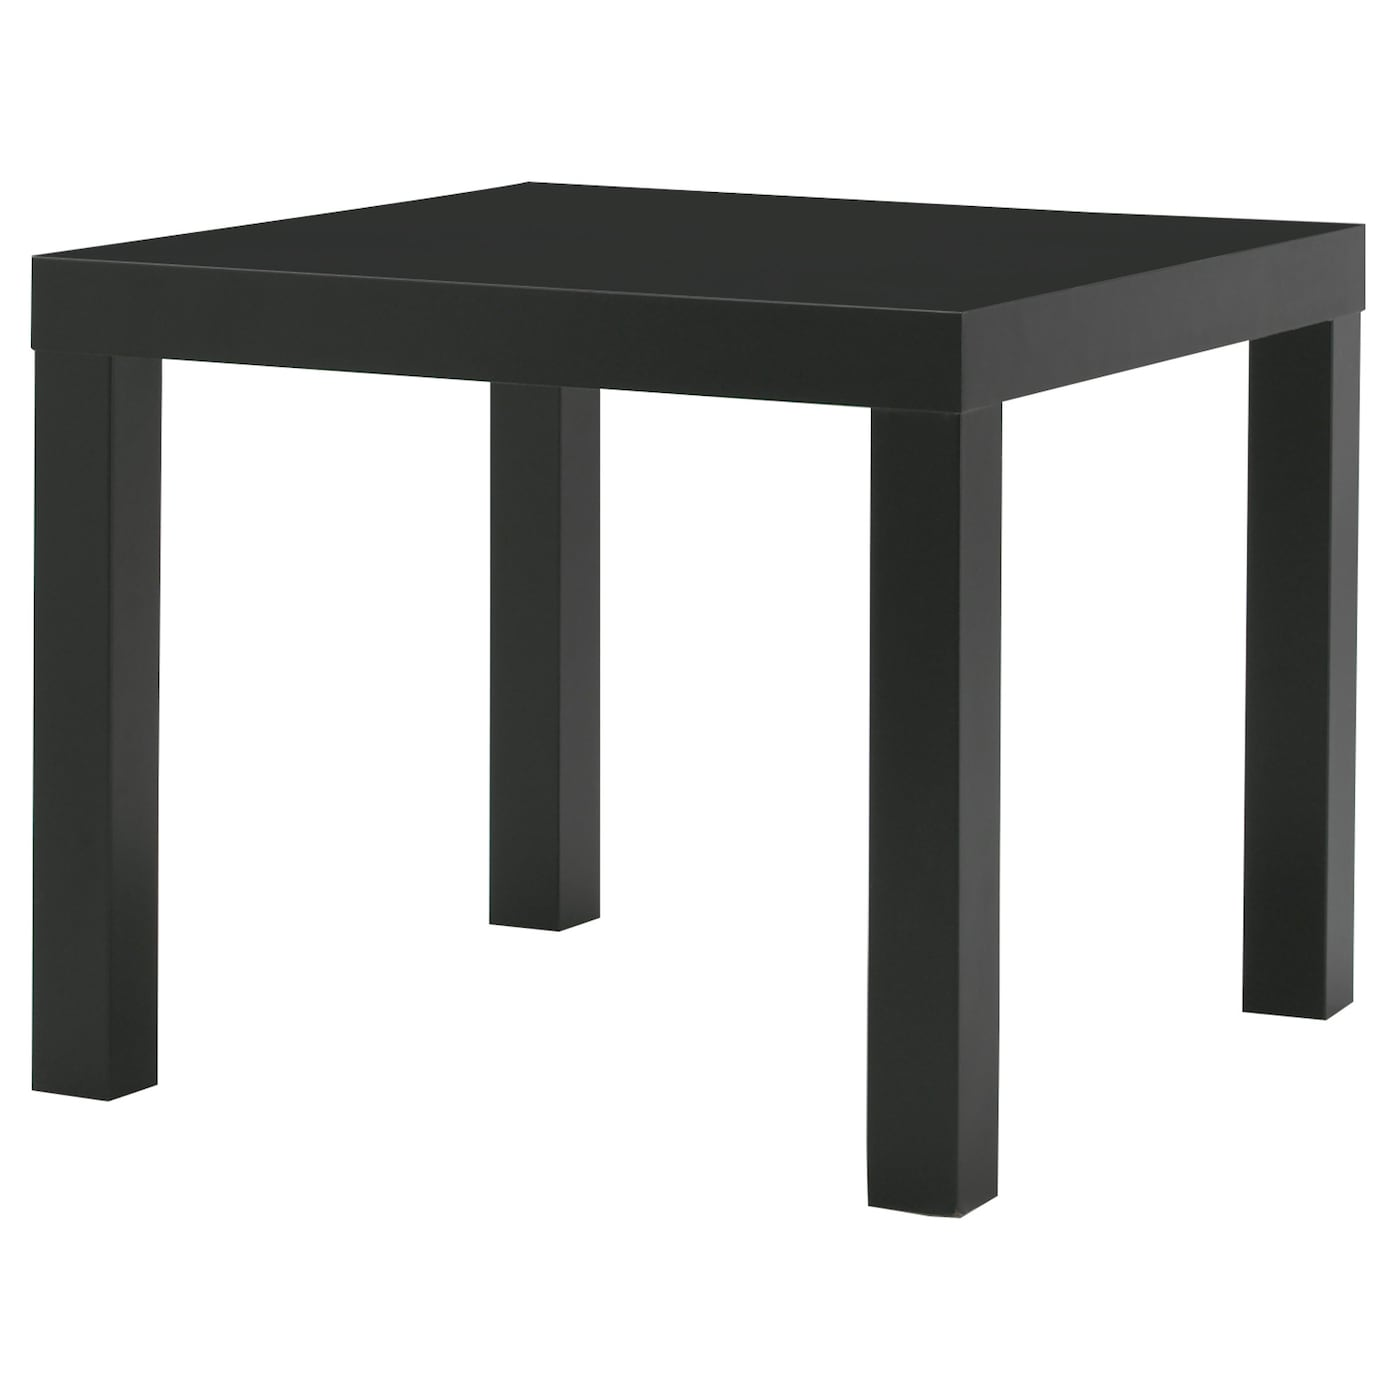 lack side table black 55 x 55 cm ikea